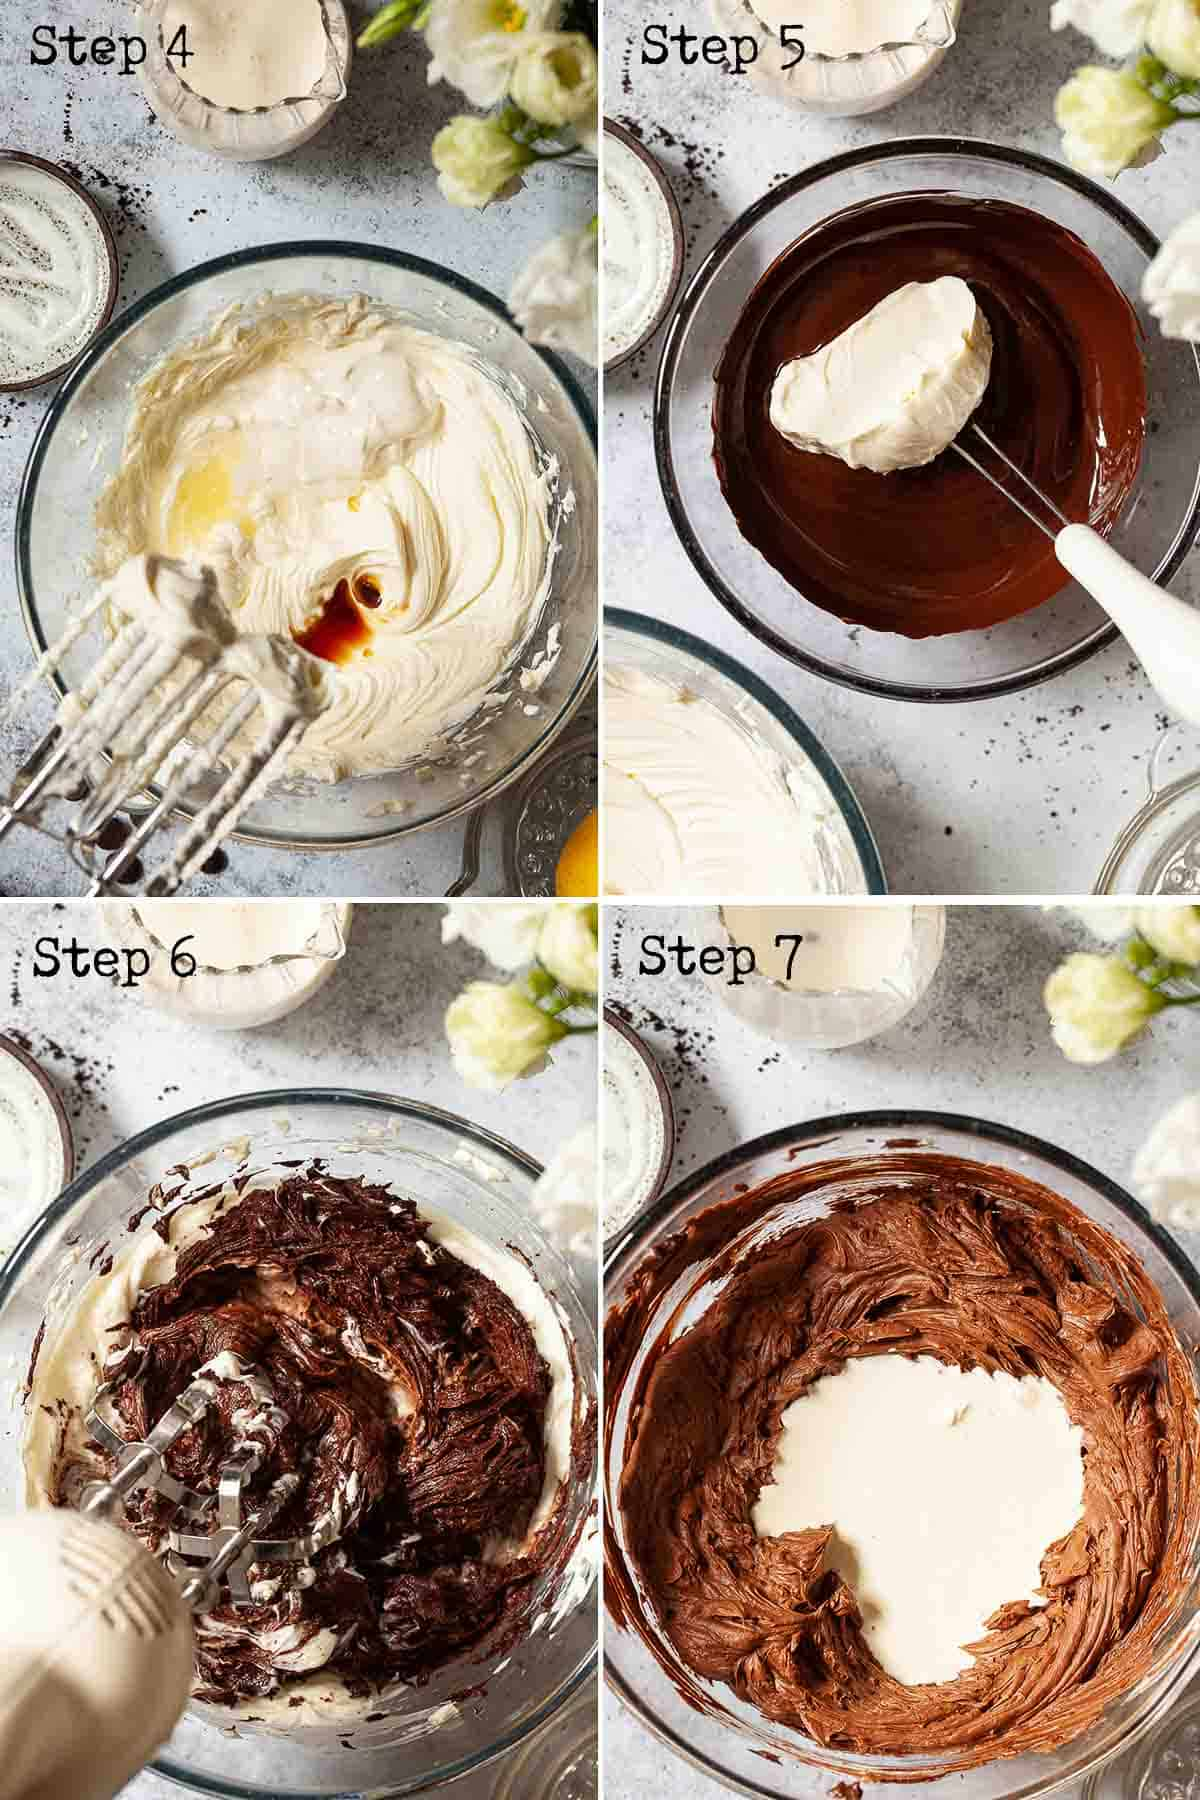 Collage of images showing a creamy no-bake chocolate cheesecake being mixed